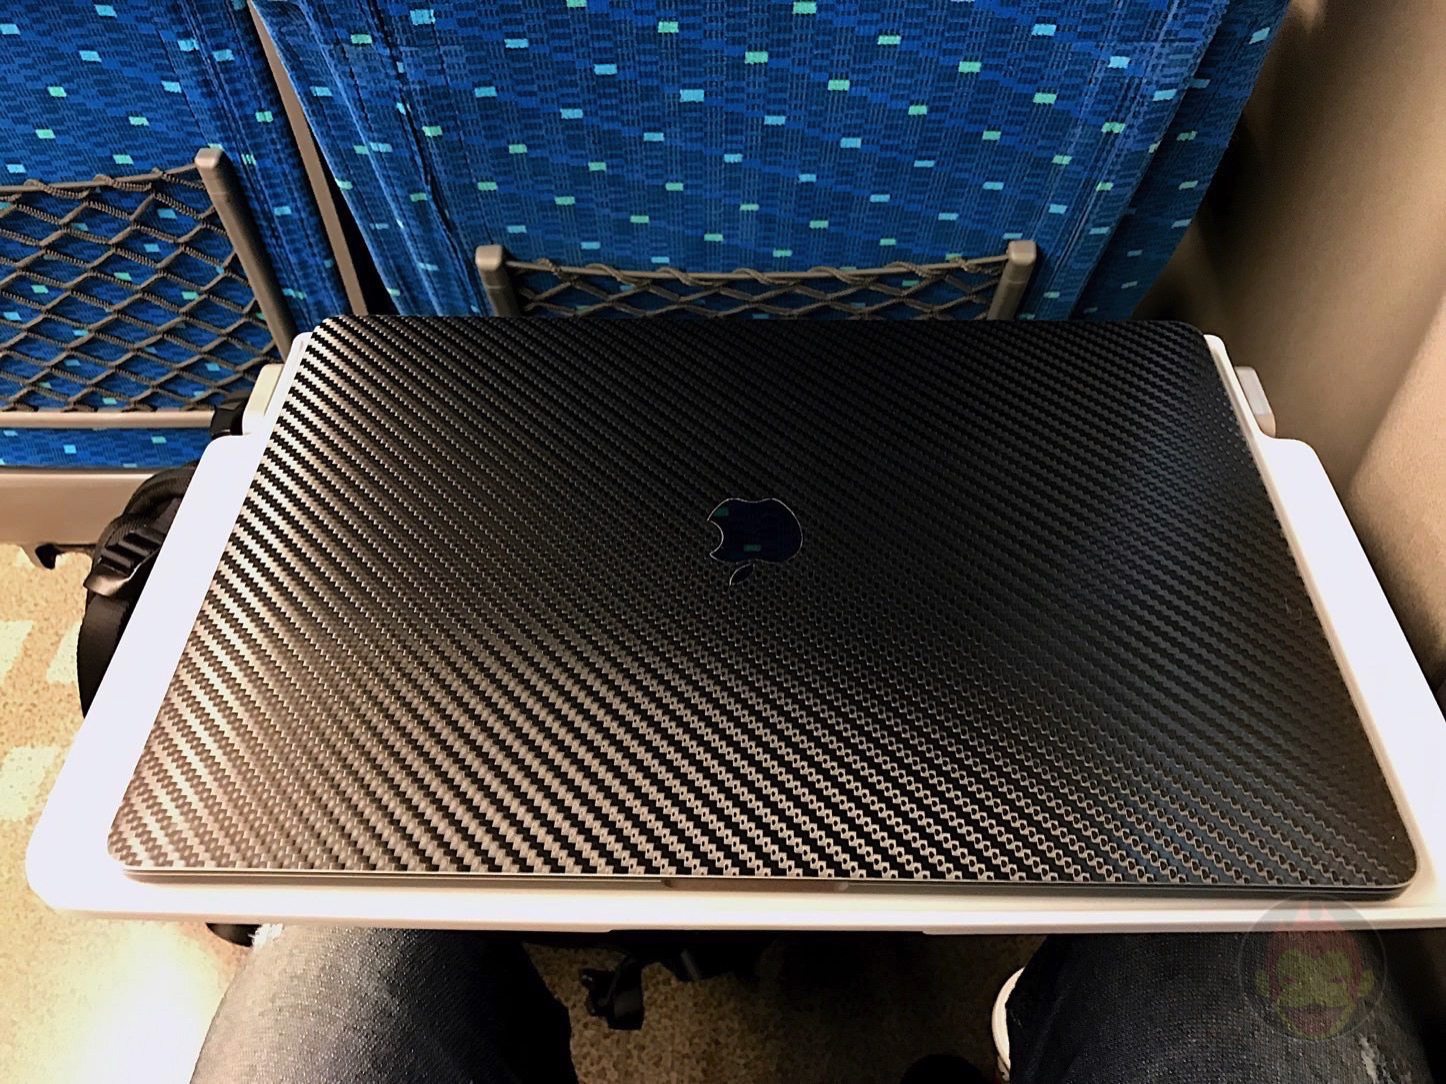 Using-the-MacBookProLate2016-on-Shinkansen-01.jpg